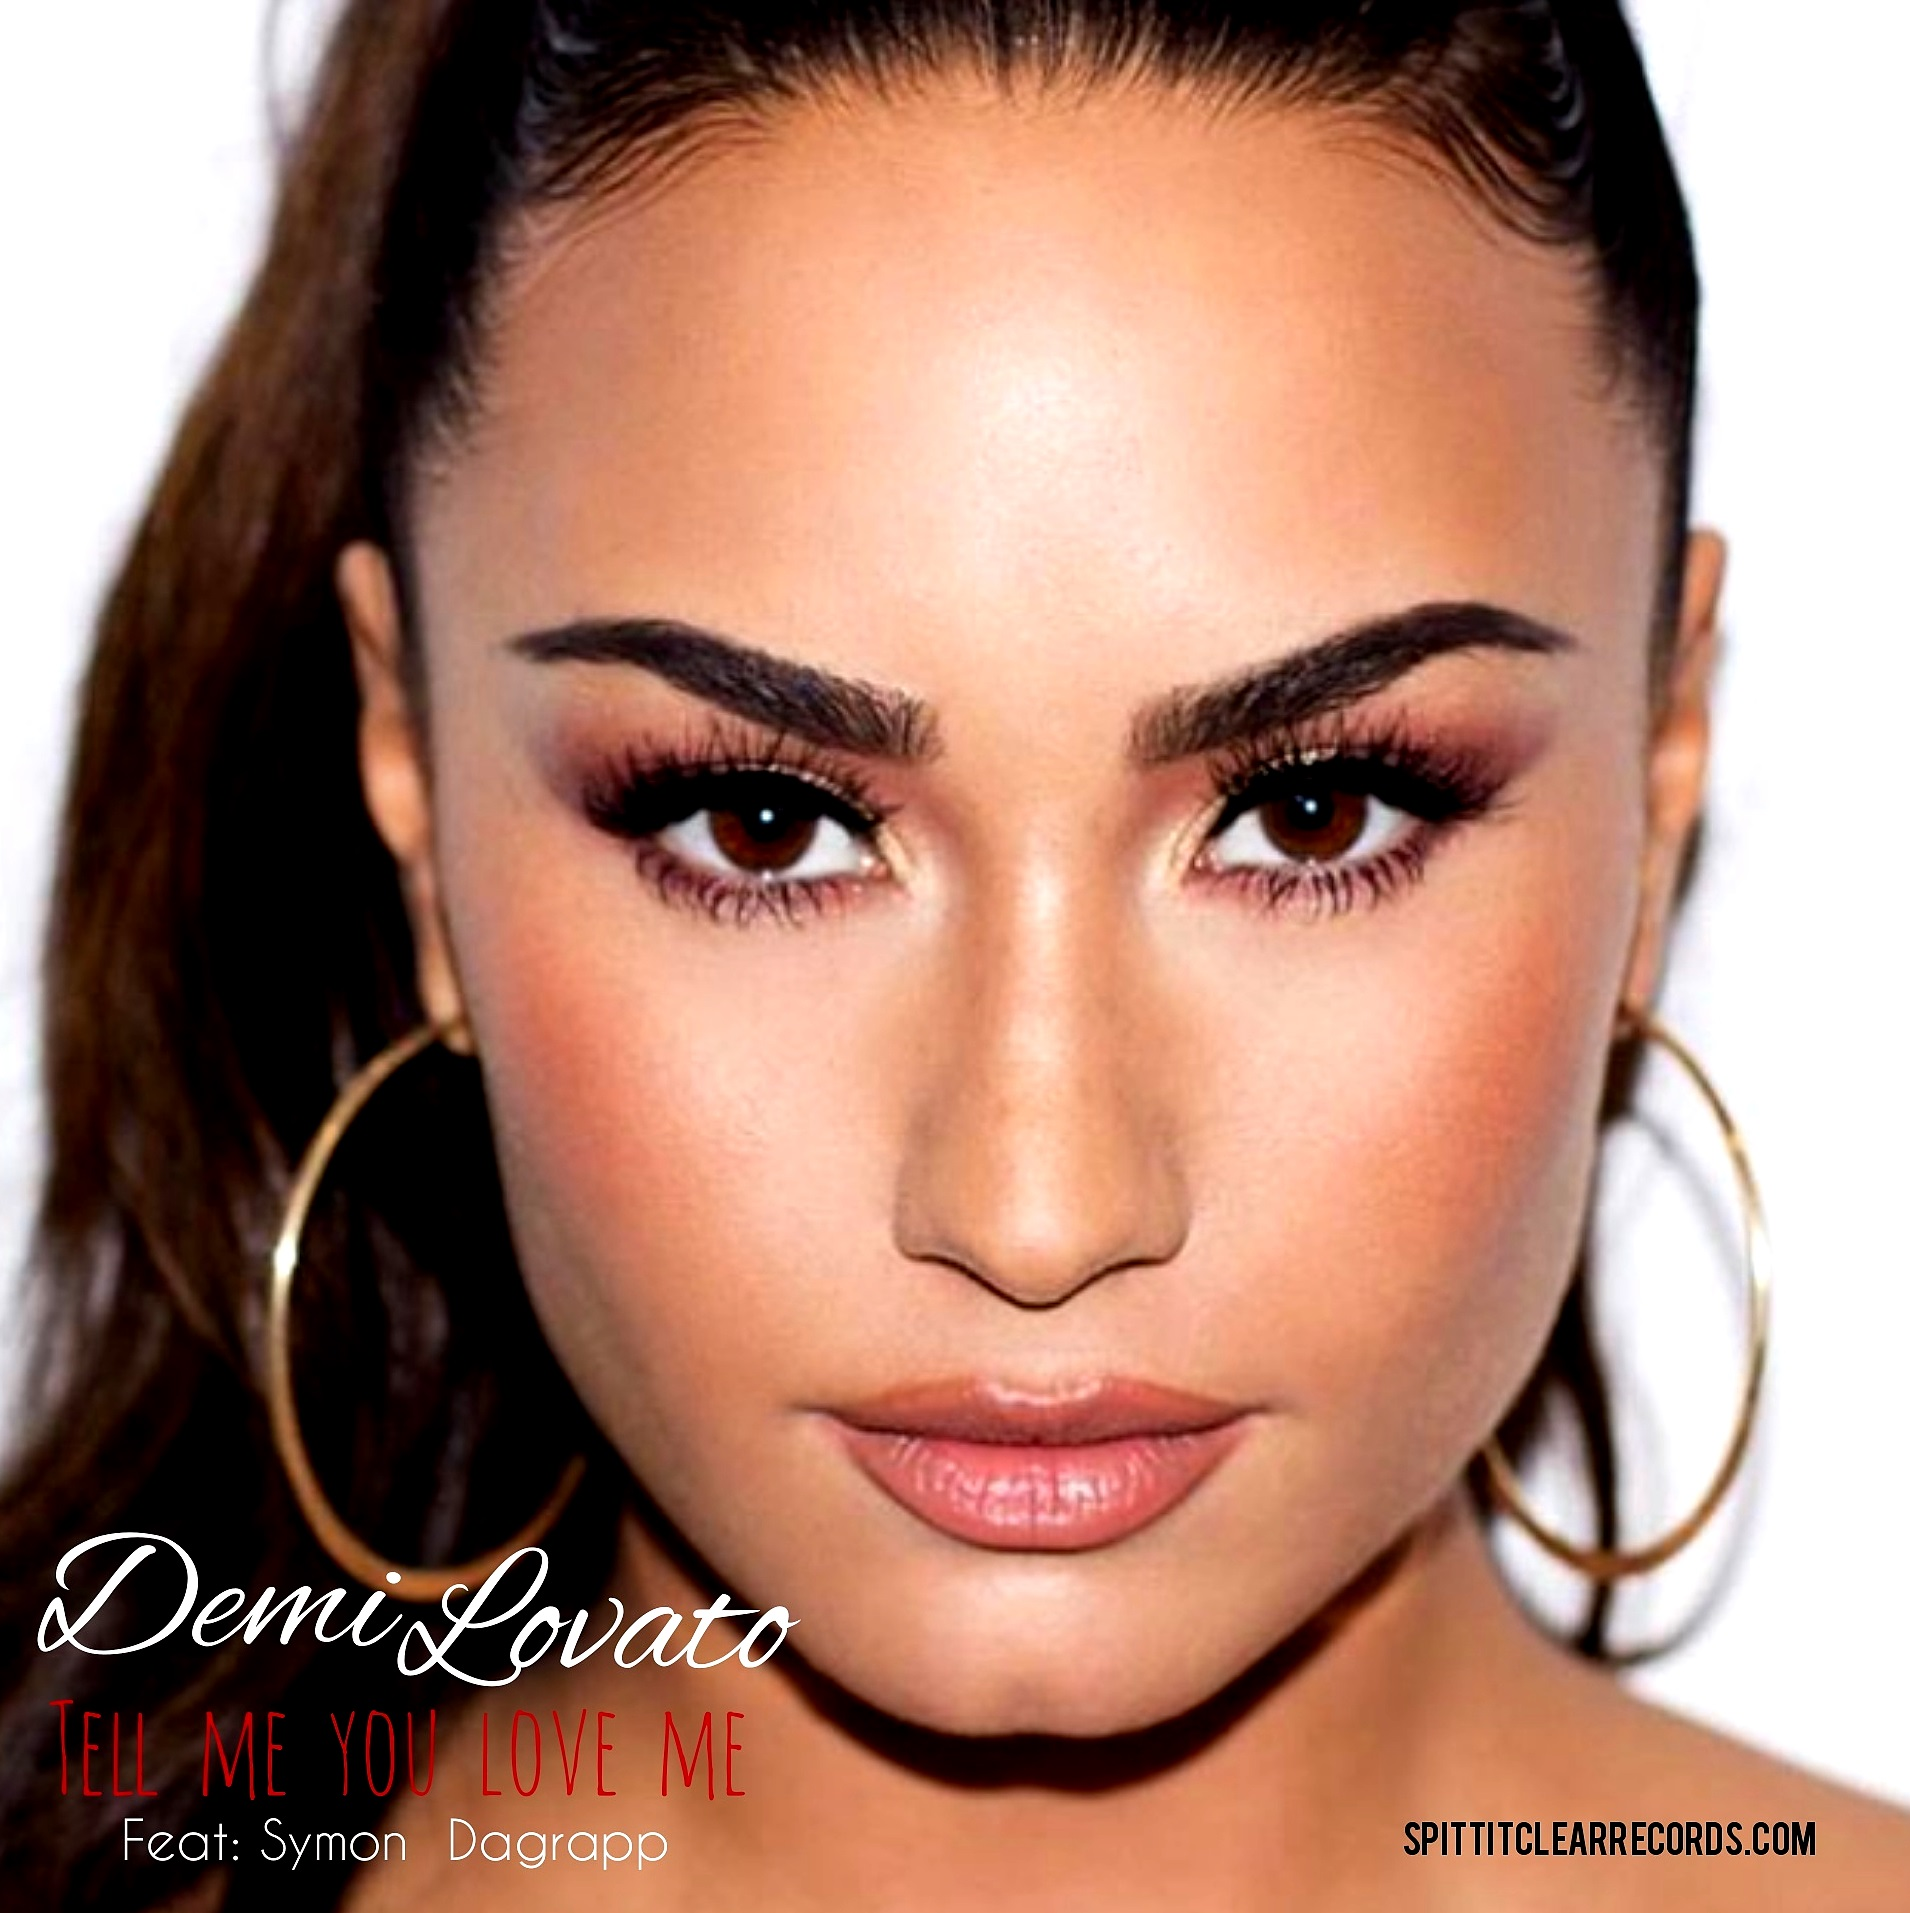 Demi Lovato  – Tell Me You Love Me Feat: Symon Dagrapp